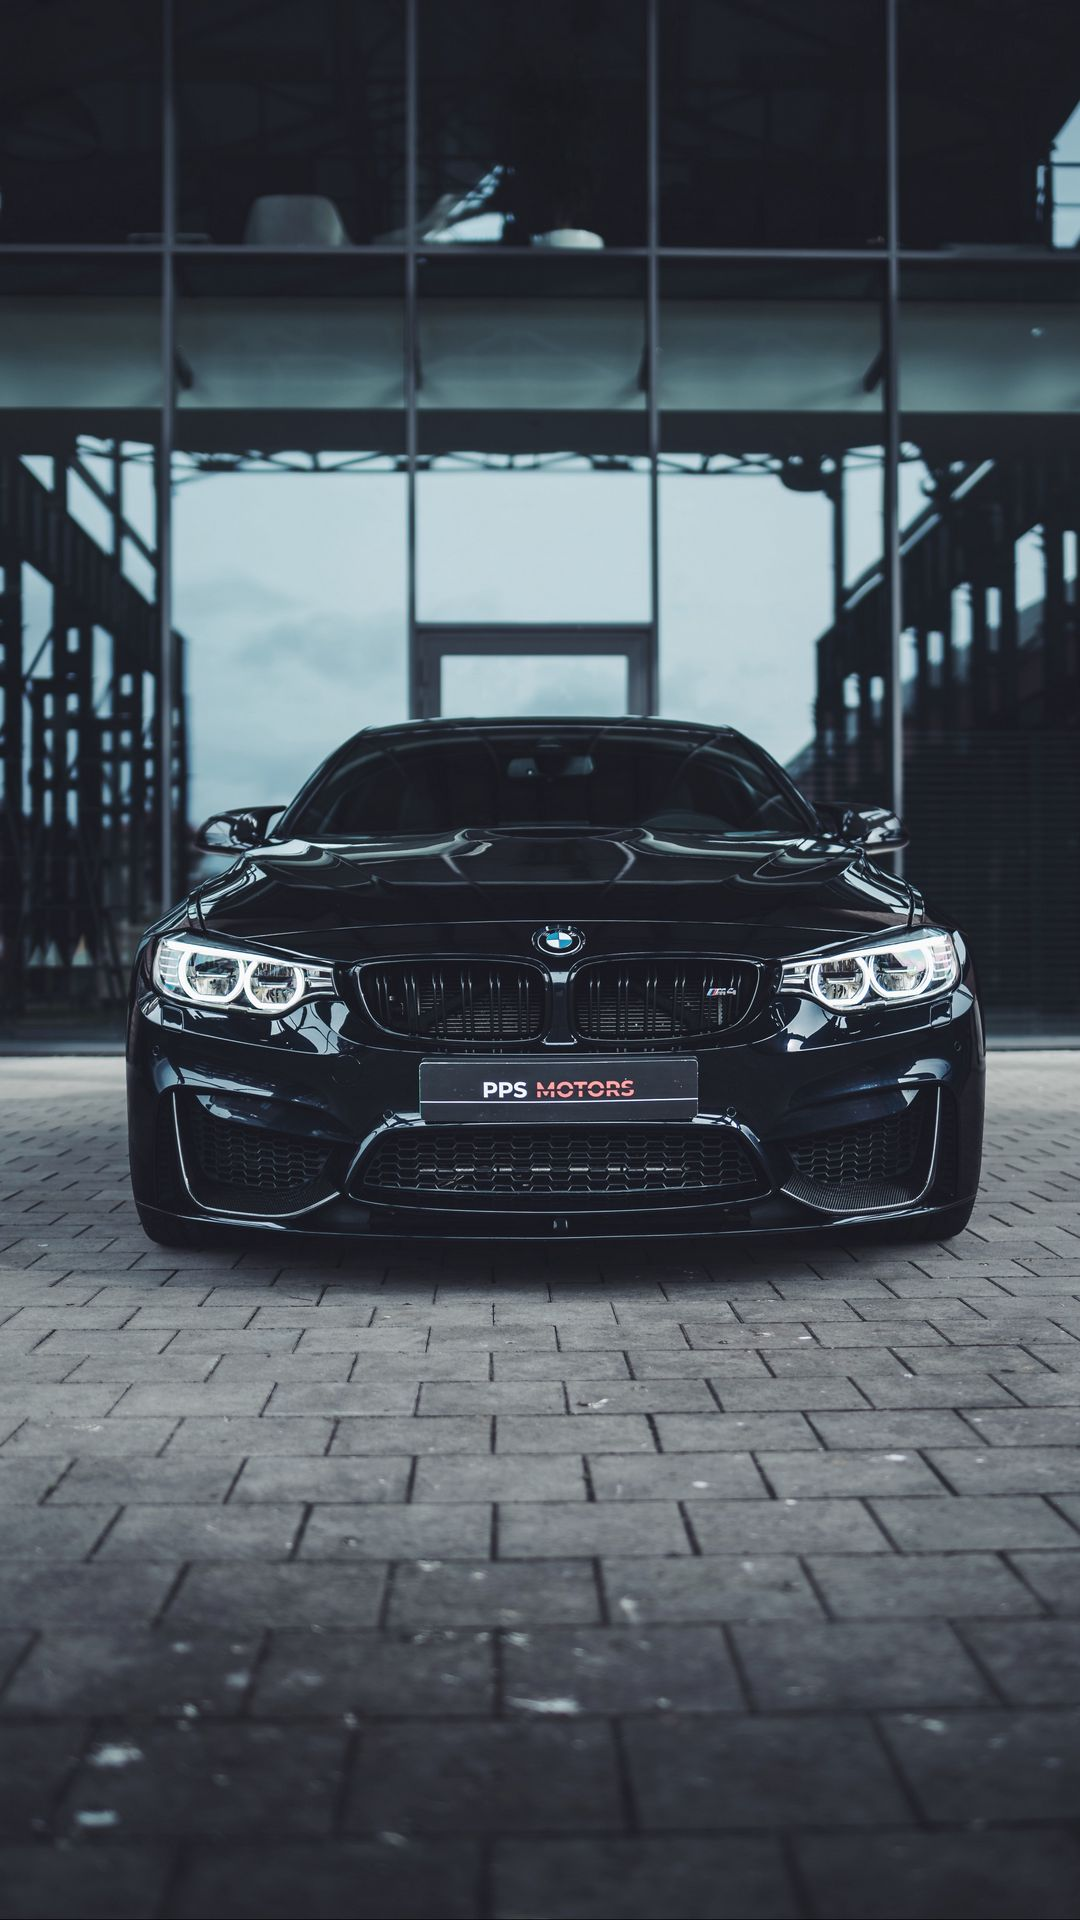 4K BMW Wallpapers – Top Free 4K BMW Backgrounds